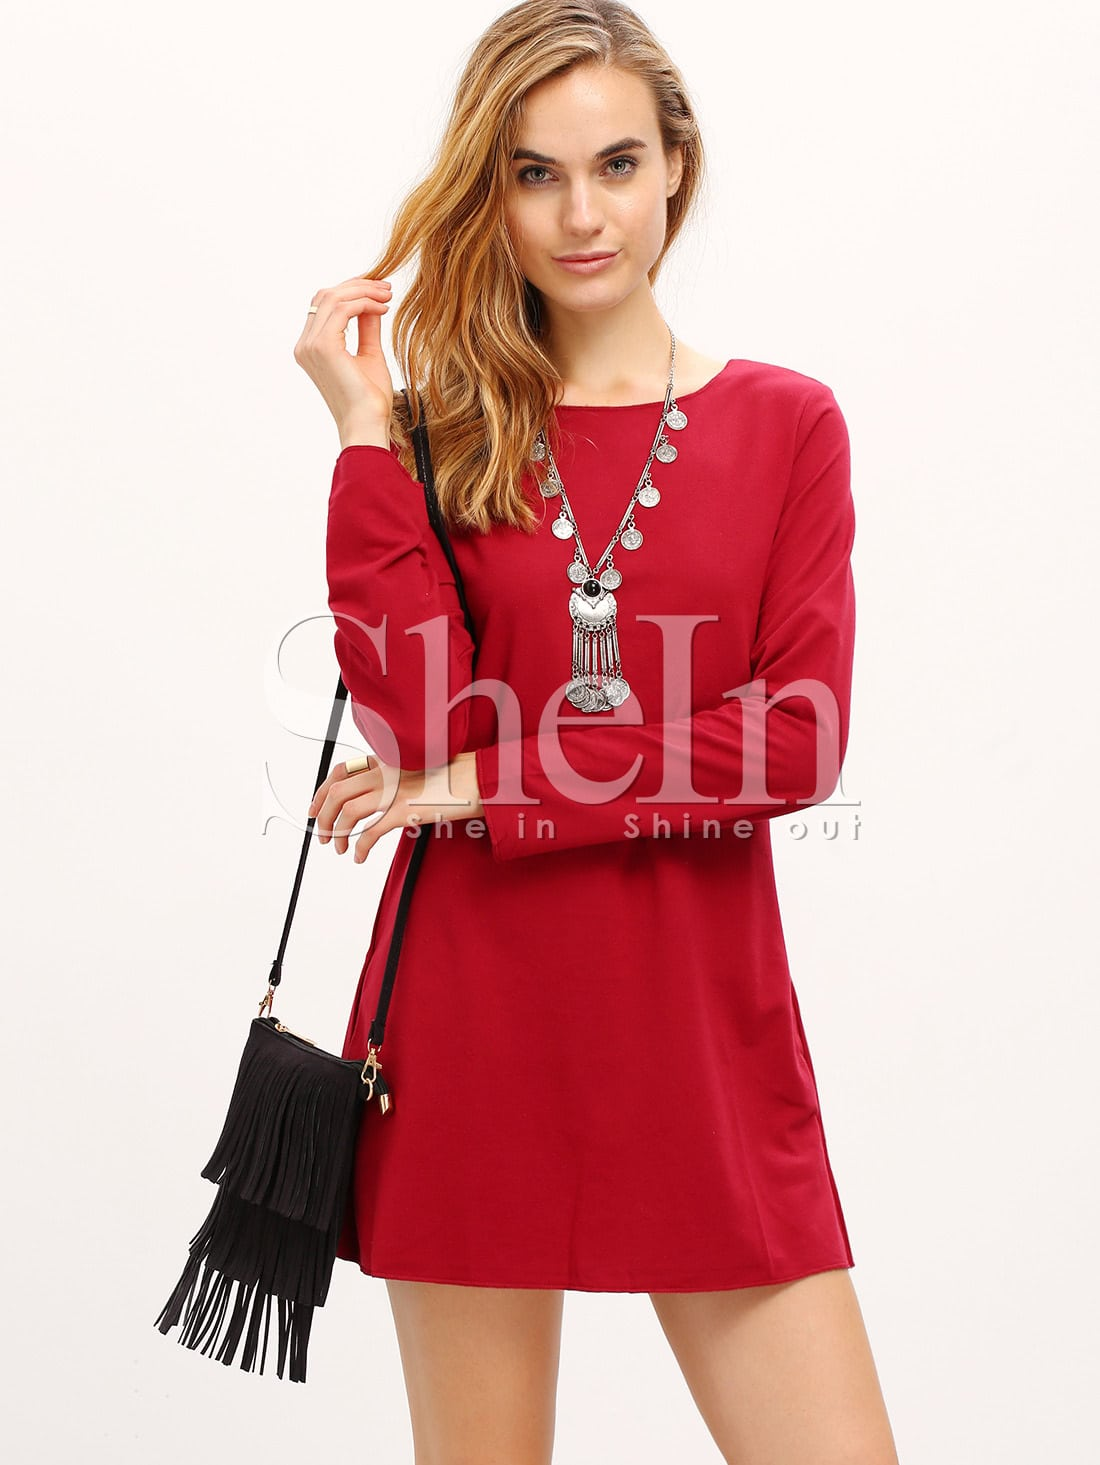 Burgundy Long Sleeve Round Neck T-ShirtBurgundy Long Sleeve Round Neck T-Shirt<br><br>color: Burgundy<br>size: XS